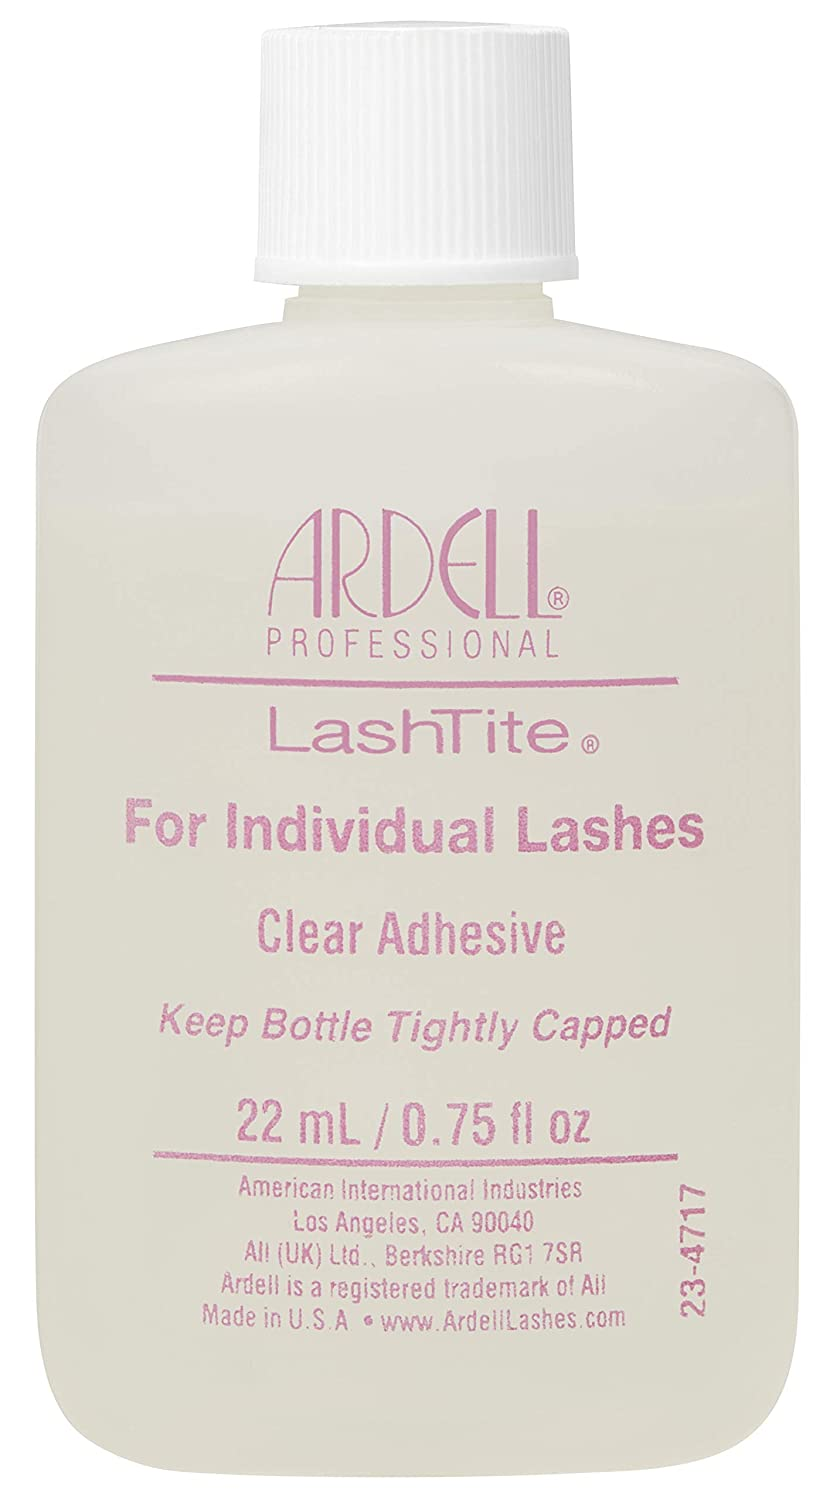 3a1e68263a0 Amazon.com : Ardell Lashtite Adhesive, Clear, 3/4-Fluid Ounce Bottle : Fake  Eyelashes And Adhesives : Beauty